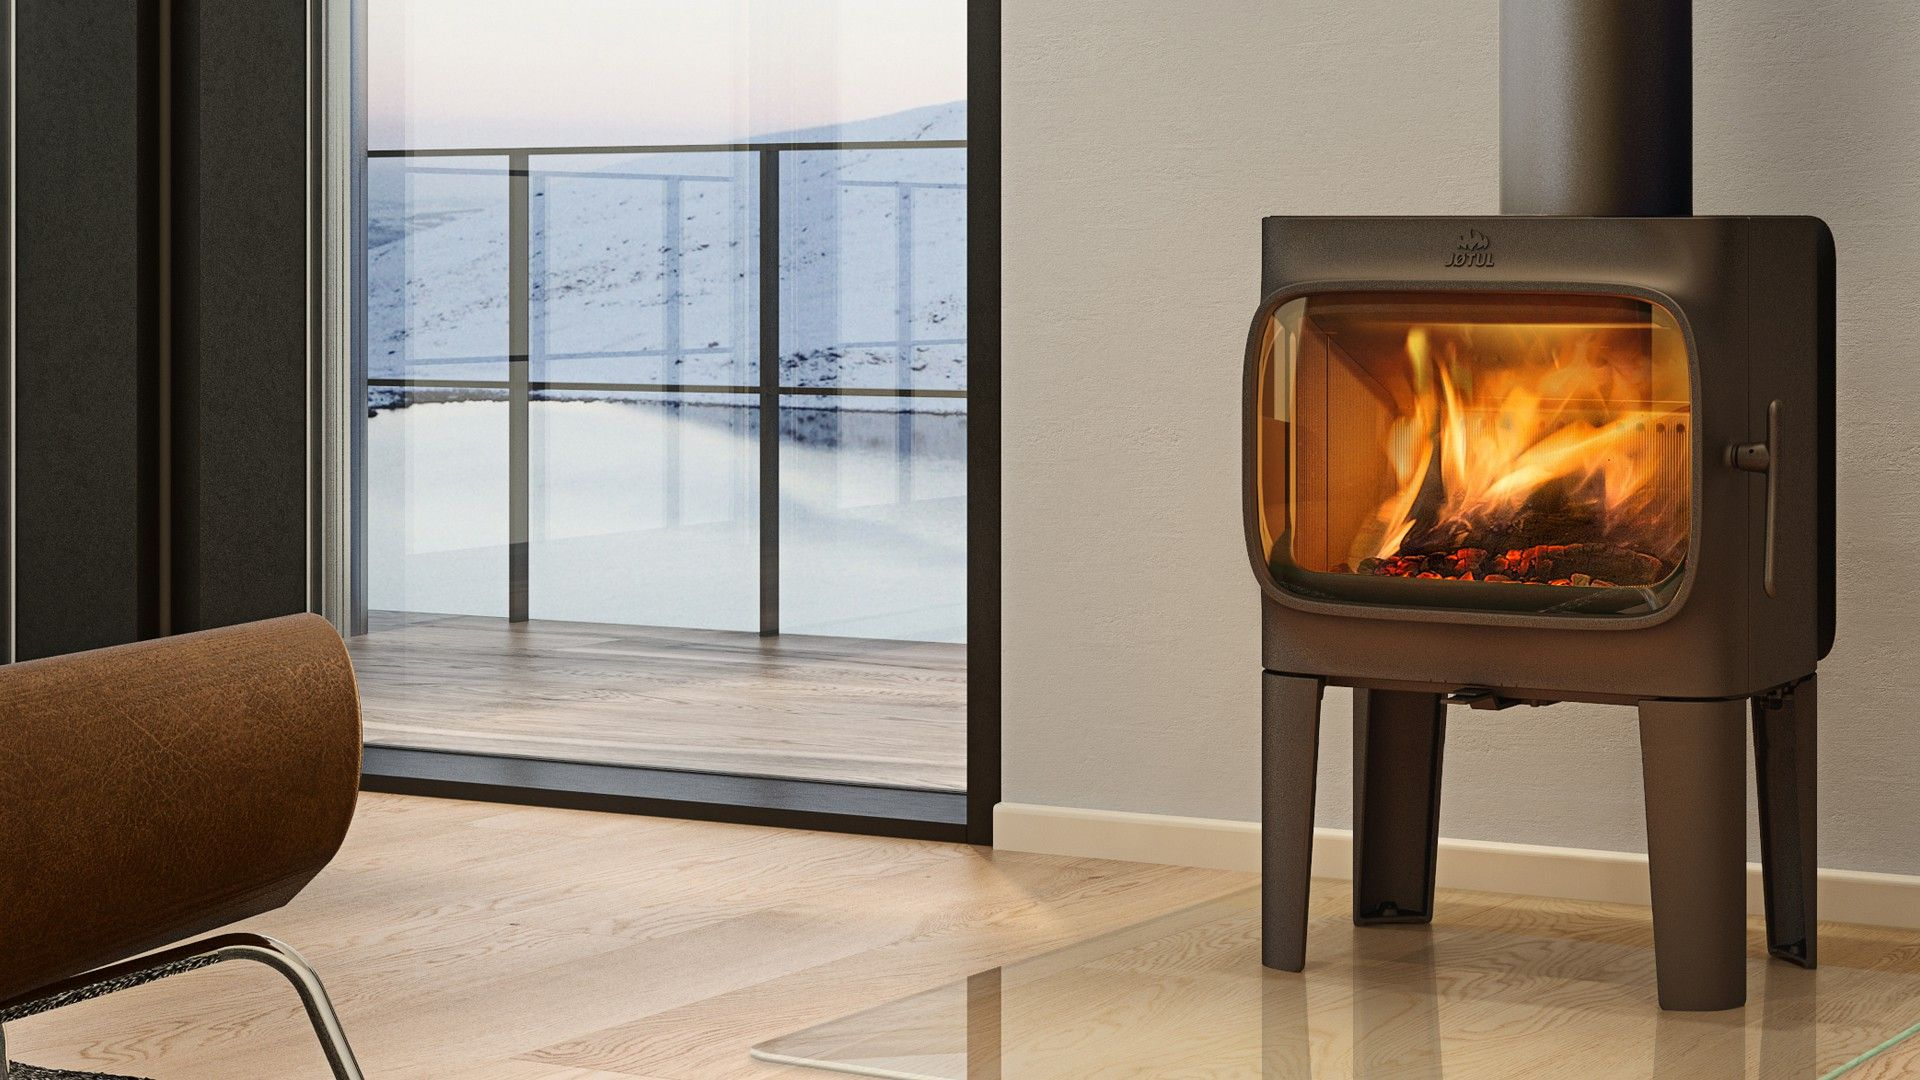 The Jotul F305 woodburningstove here offering redifining what a